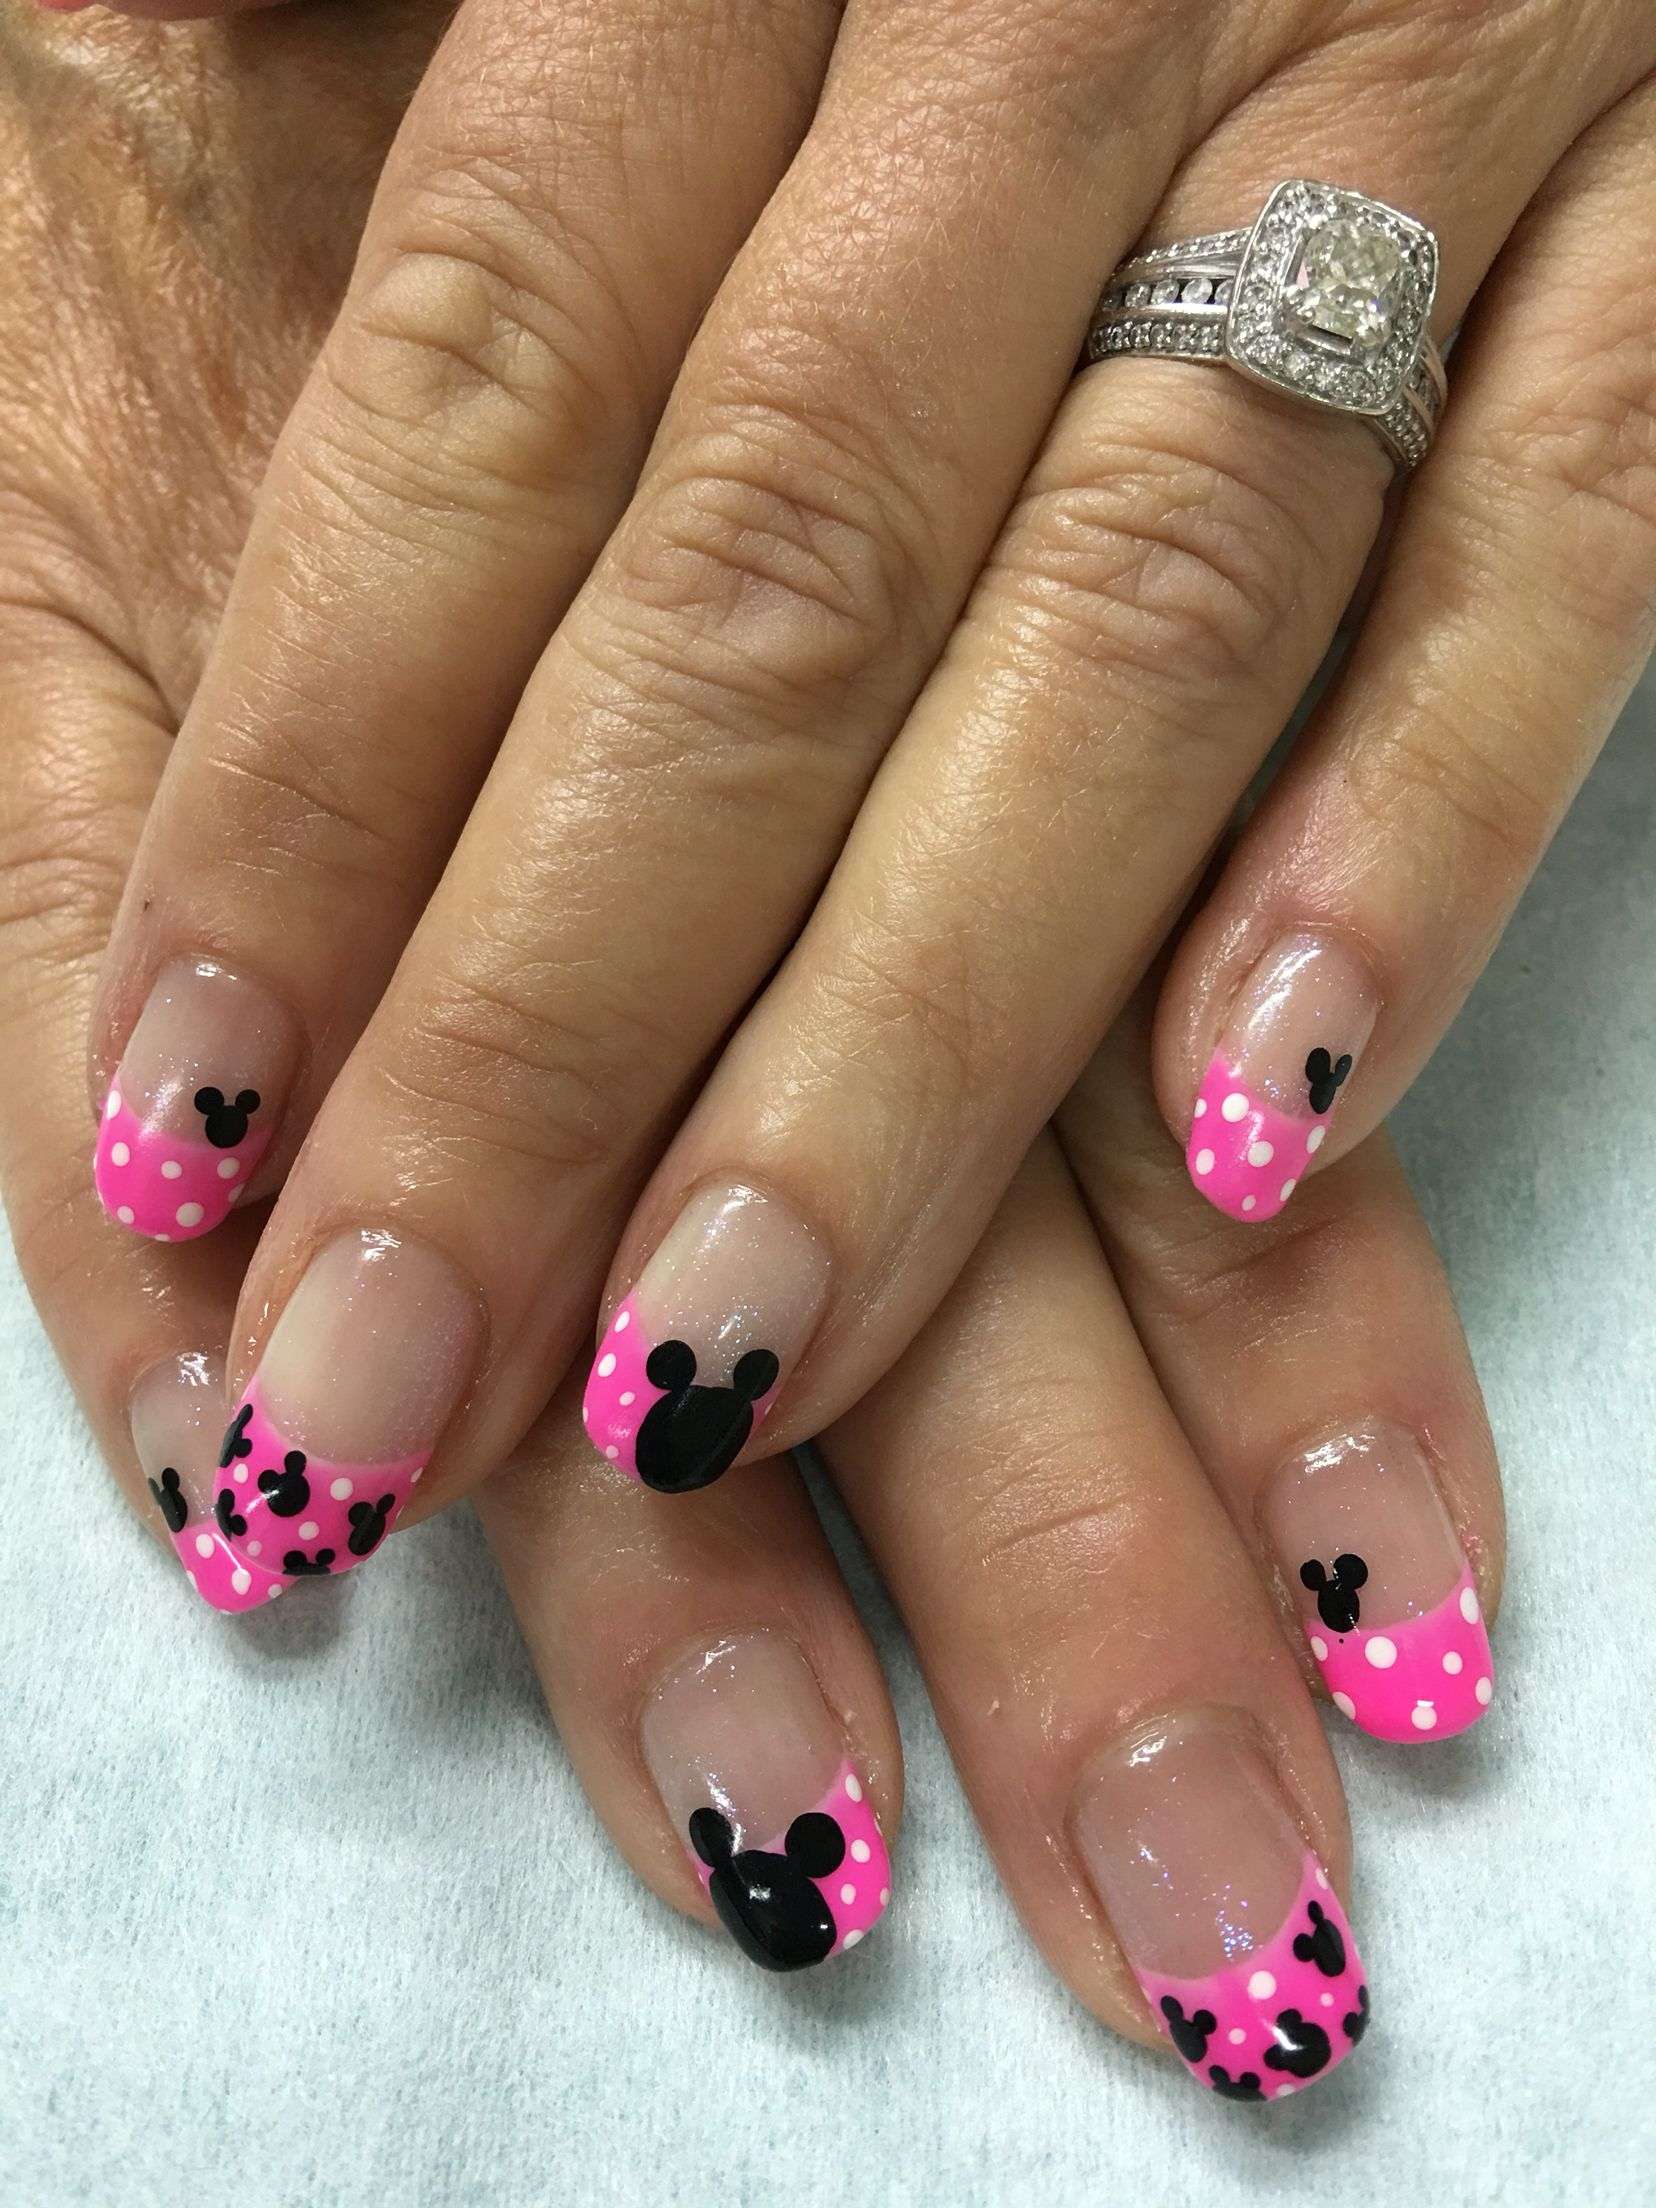 Disney Nails Pink Polka Dot Mickey Mouse gel nails | Gel Nail ...